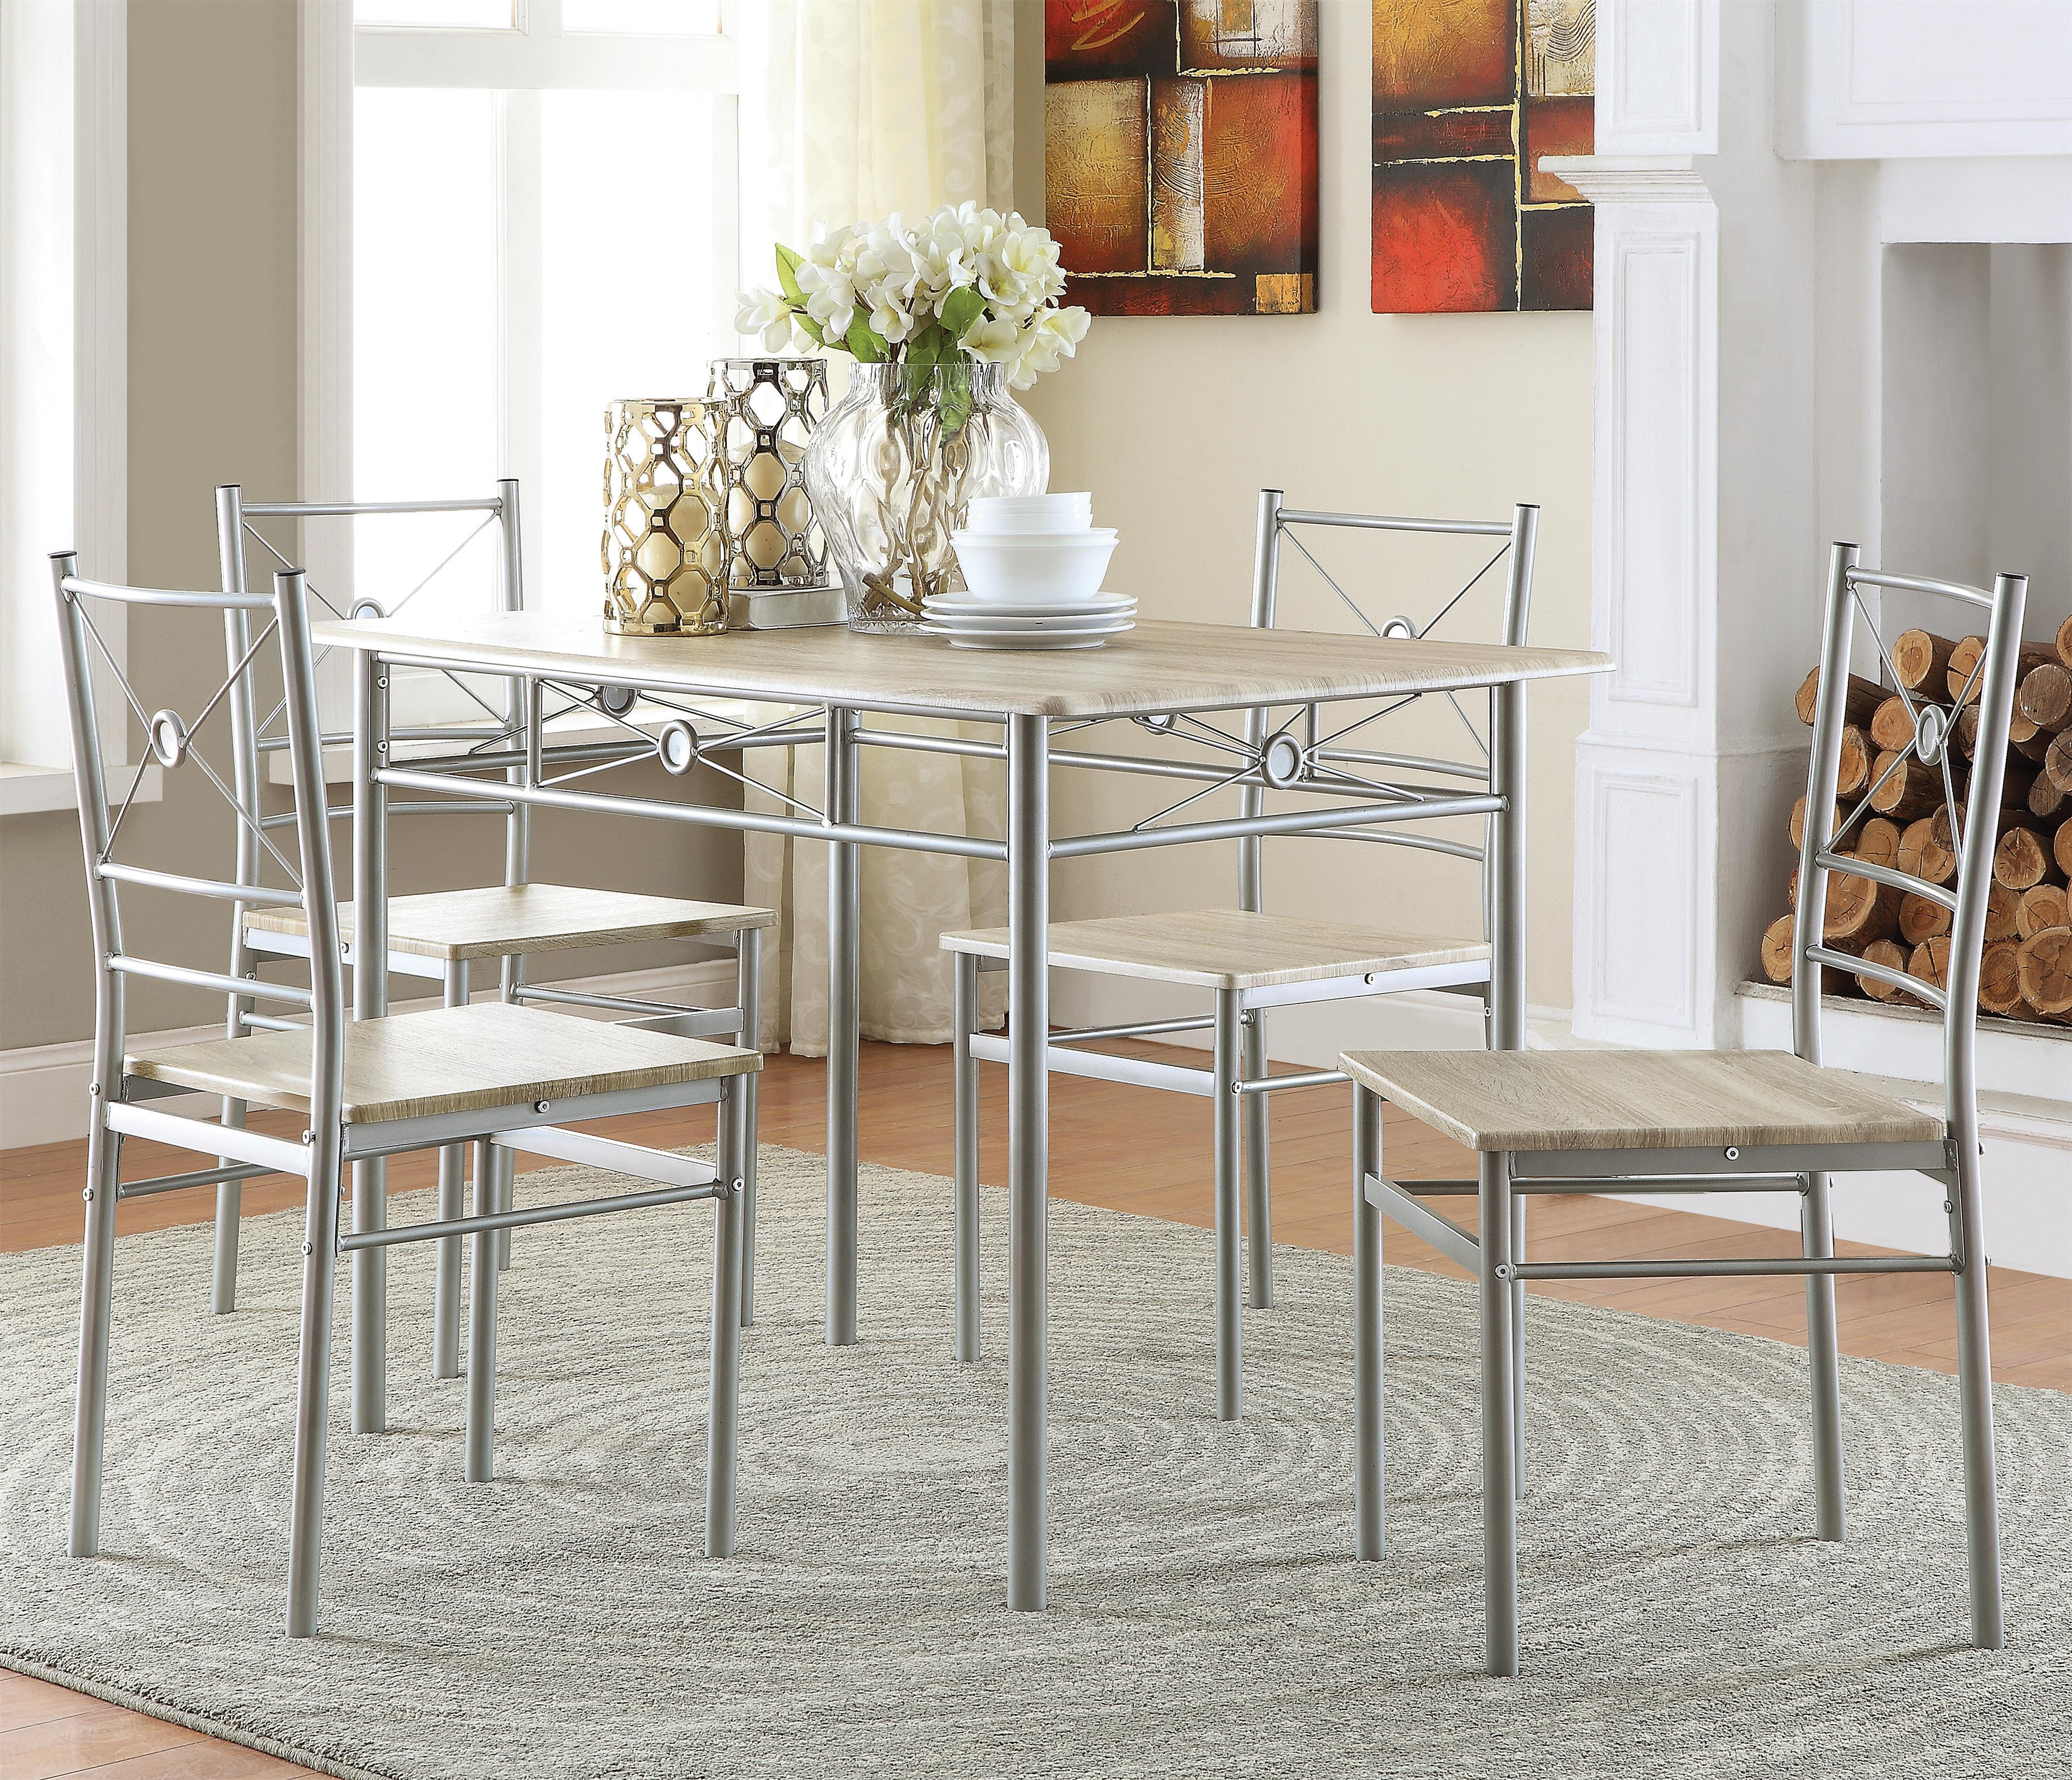 100035 5 Piece Dining Group by Coaster at Furniture Superstore - Rochester, MN